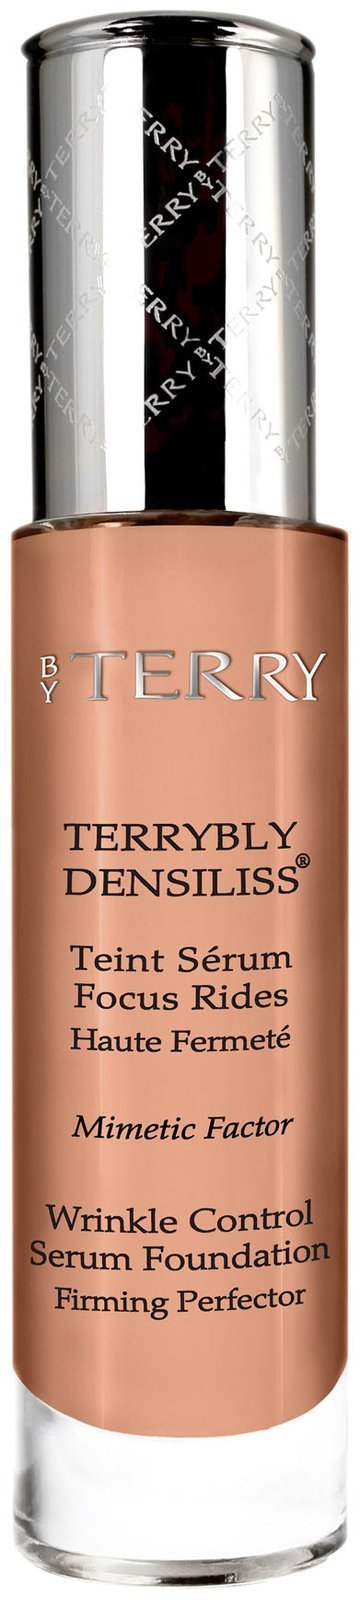 By Terry Terrybly Densiliss Foundation - 7 - Golden Beige